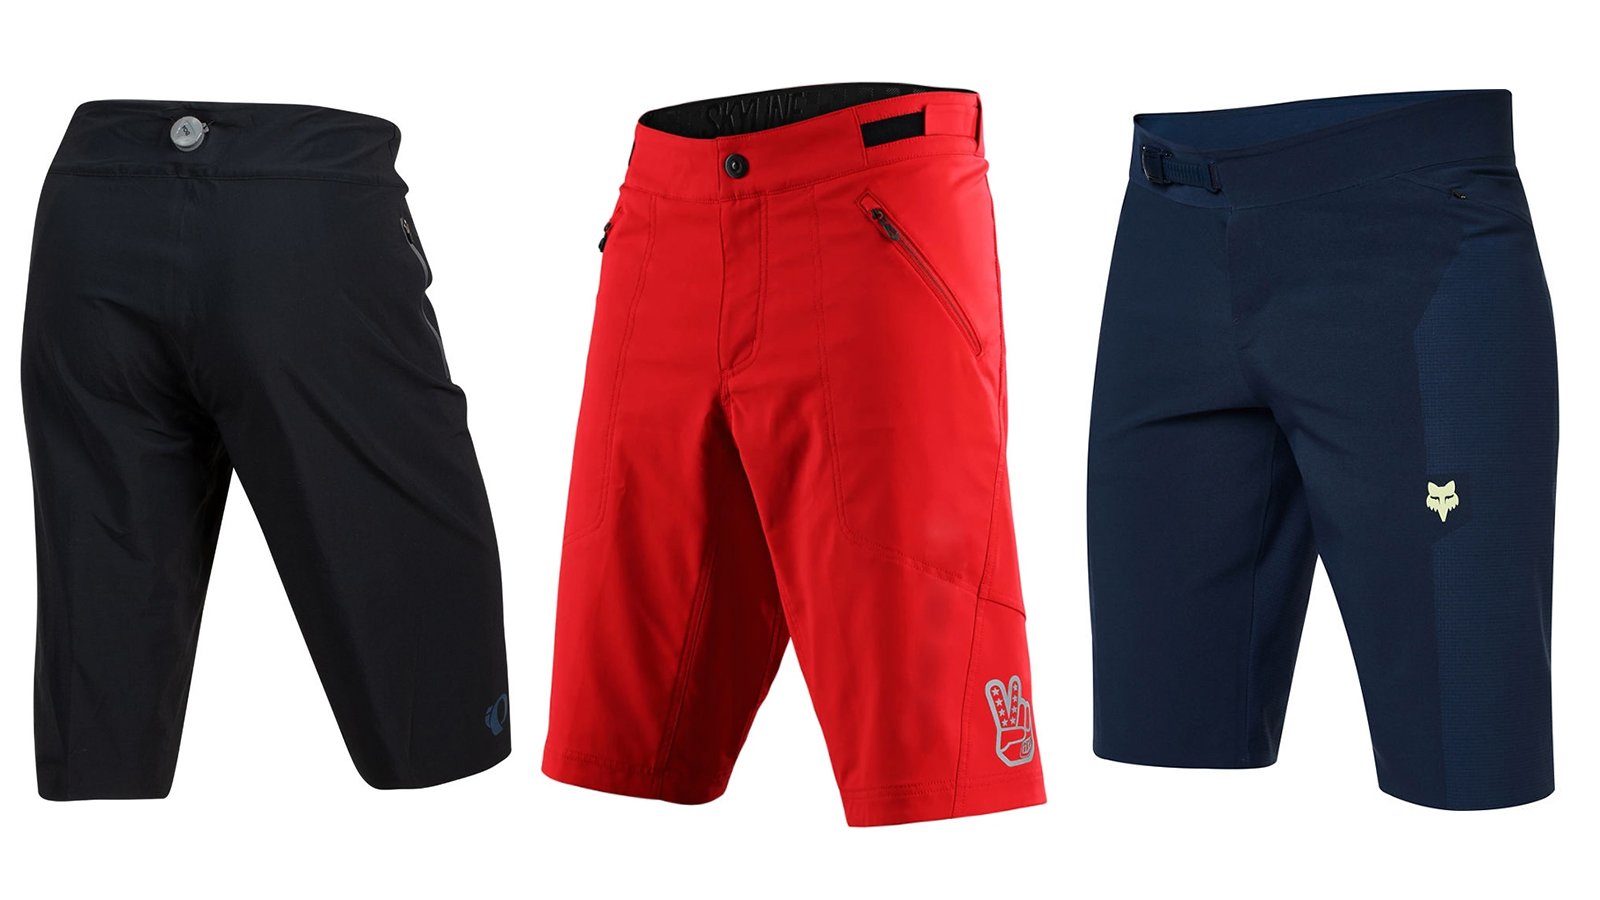 It's not just about style. A quality pair of mountain biking shorts will make your time in the saddle more comfortable.